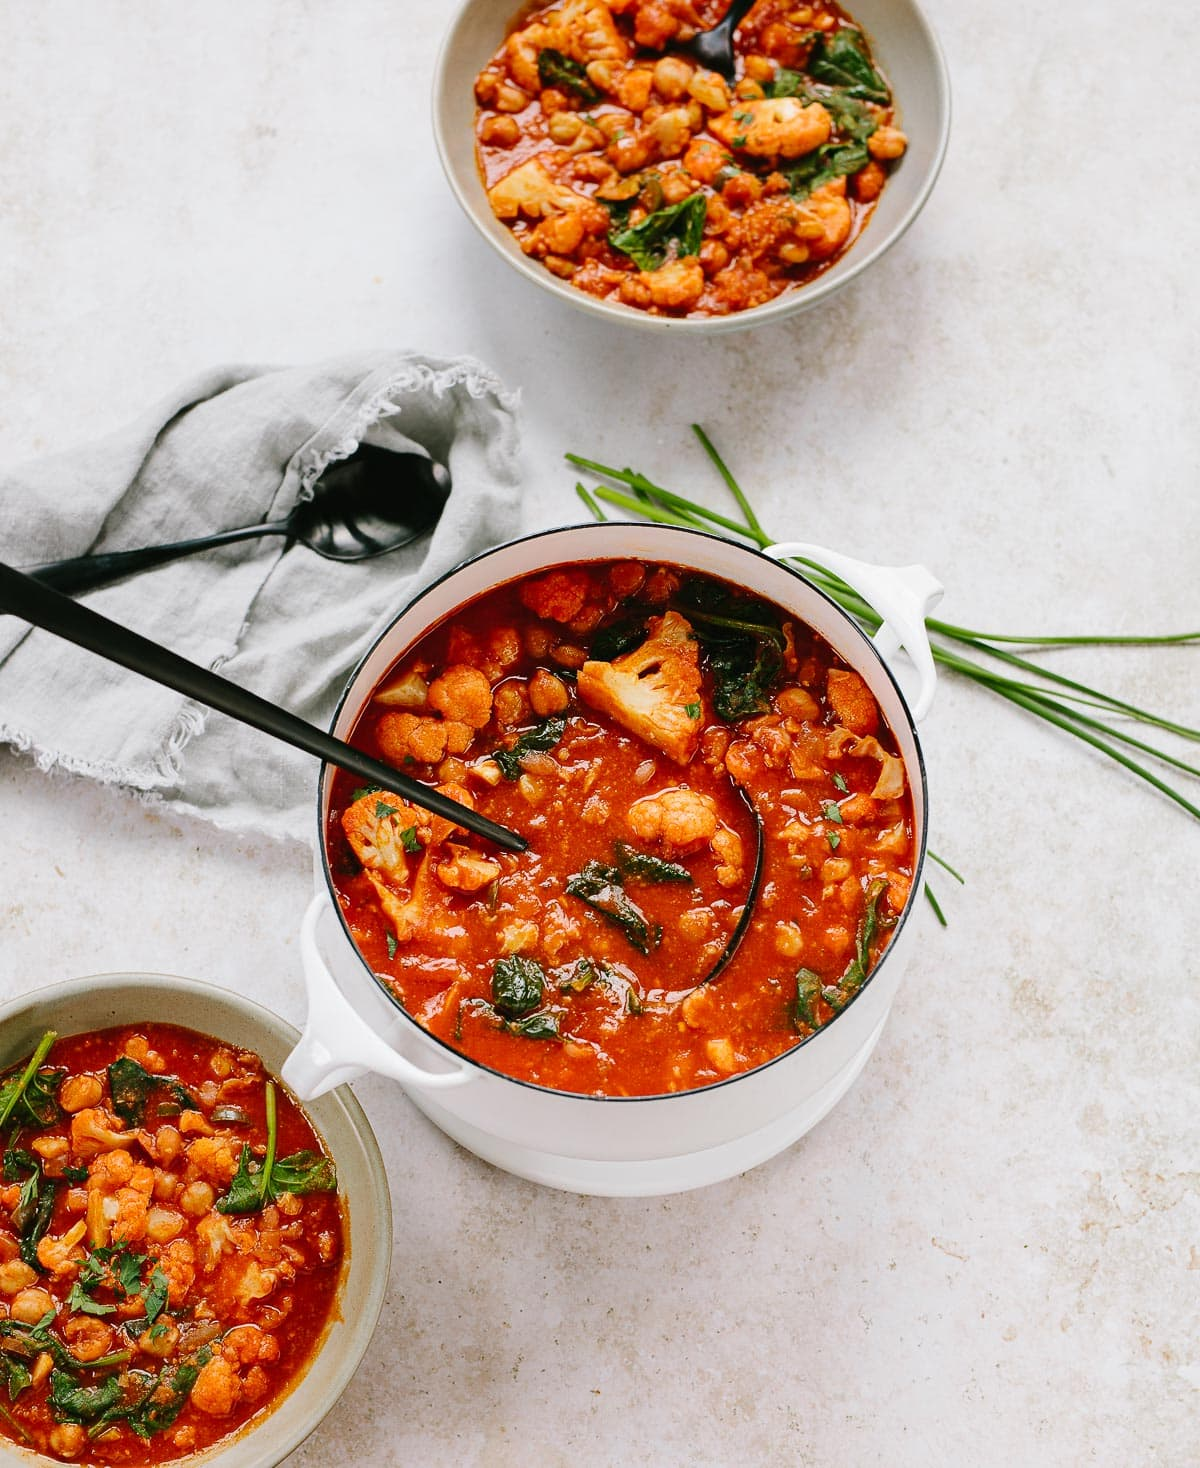 A vibrant red tomato-based chickpea and cauliflower stew in a white soup pot and ladle, served into bowls.